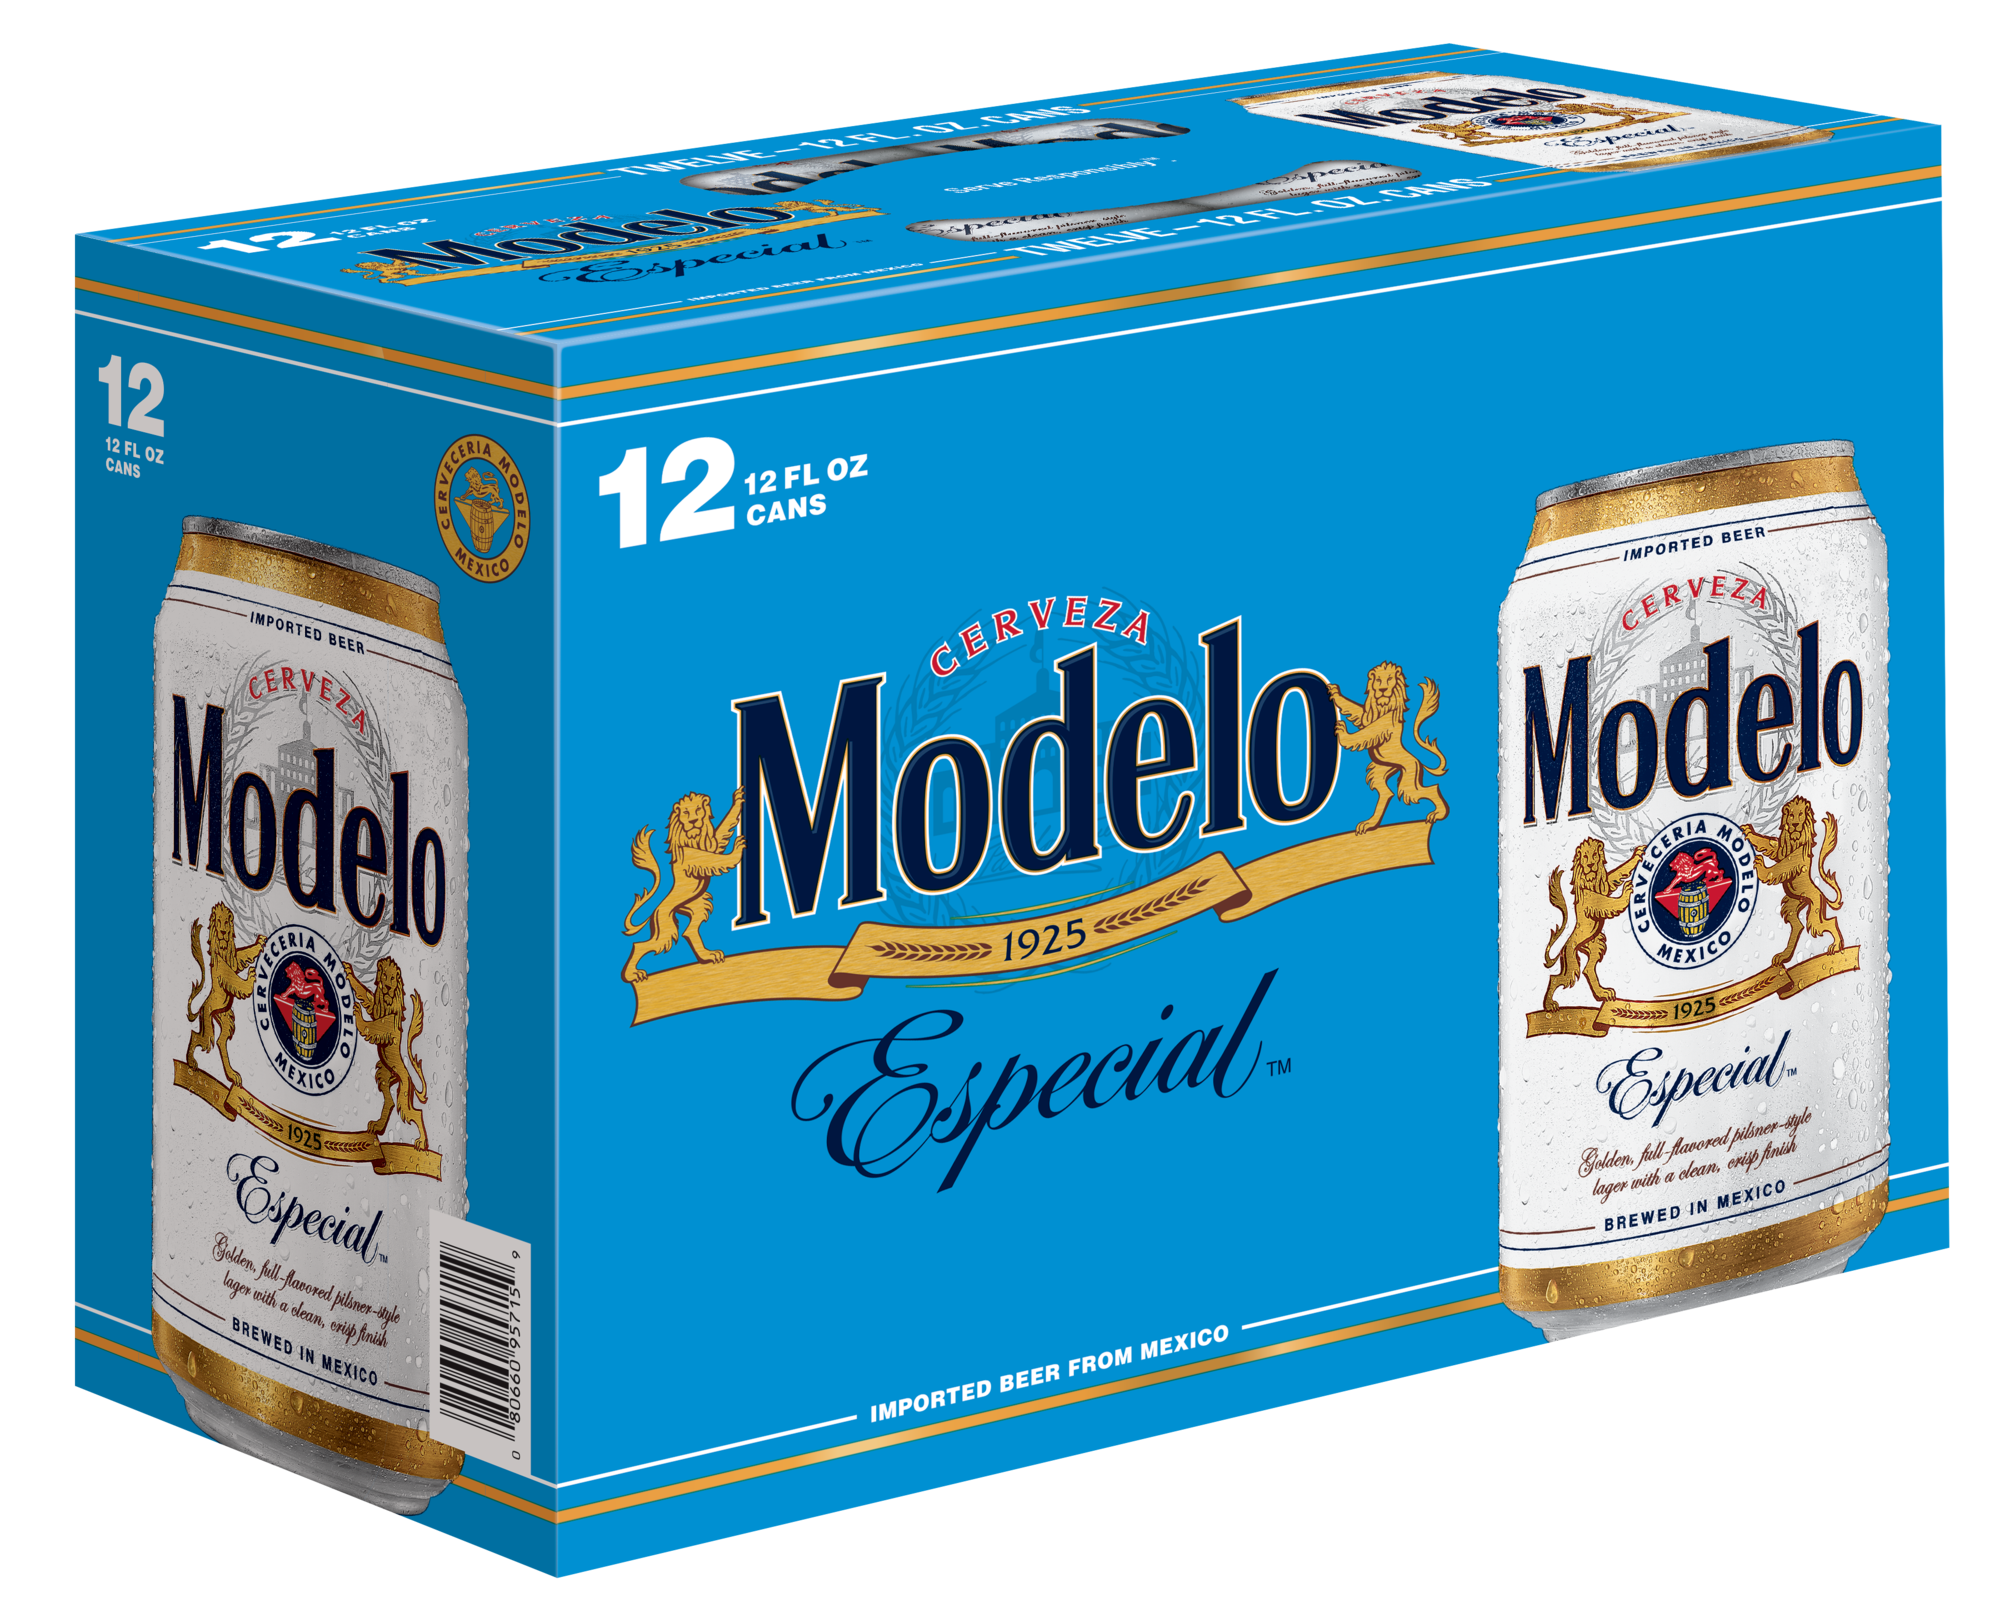 Modelo Especial beer 12 pack. Modelo beer available near me 24/7 at 7-Eleven.